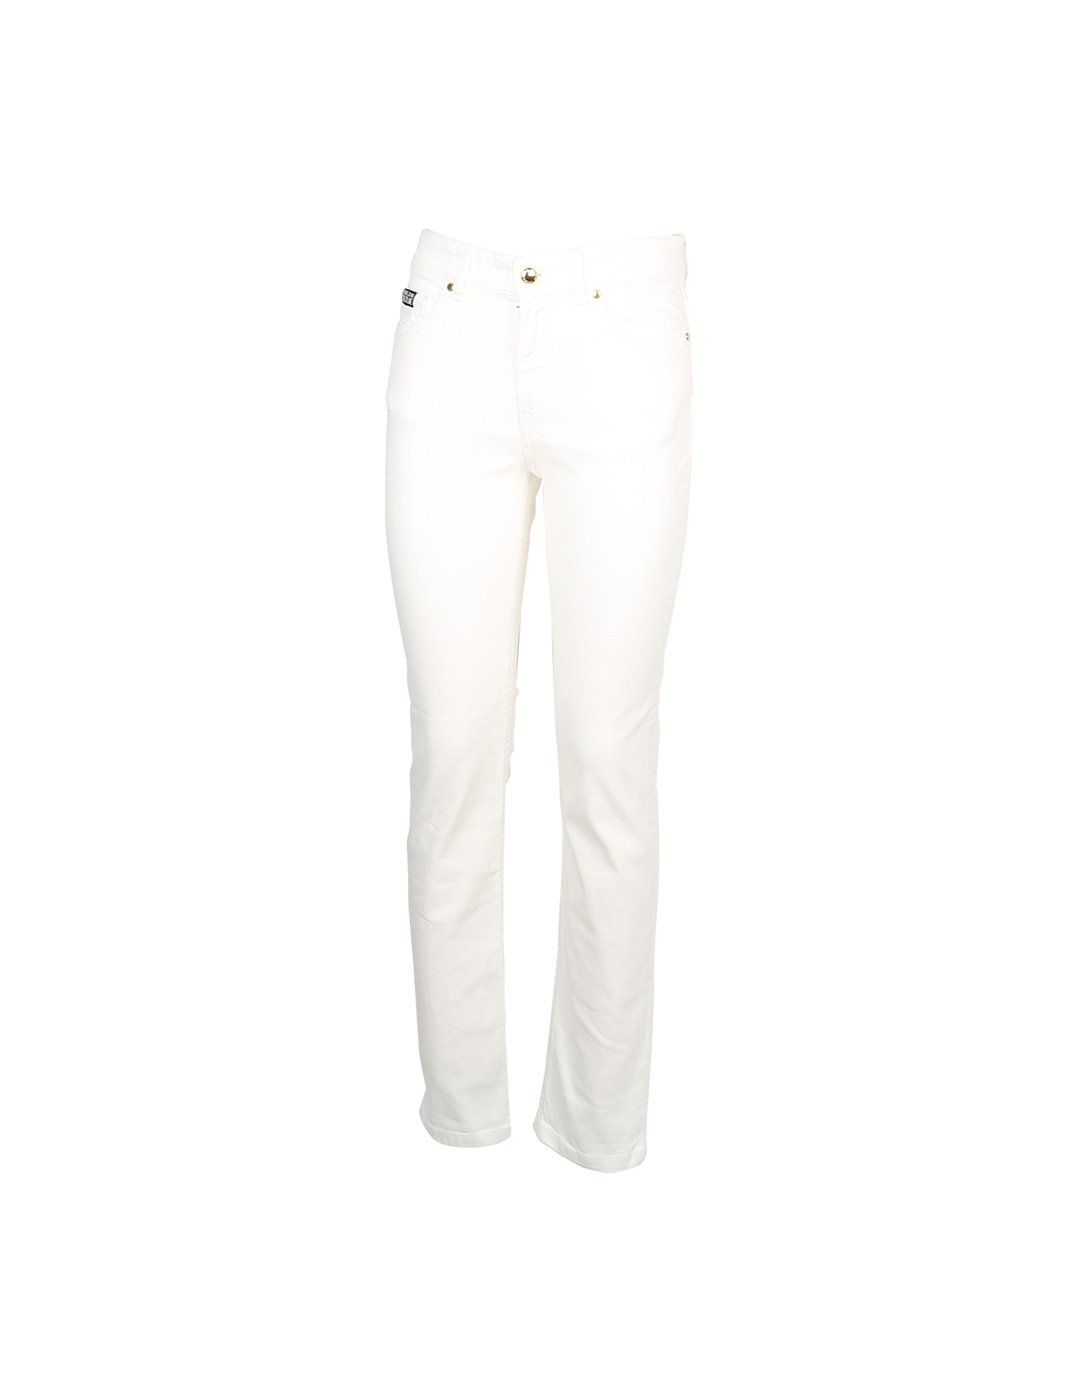 Versace Jeans VERSACE JEANS MEN'S WHITE COTTON JEANS